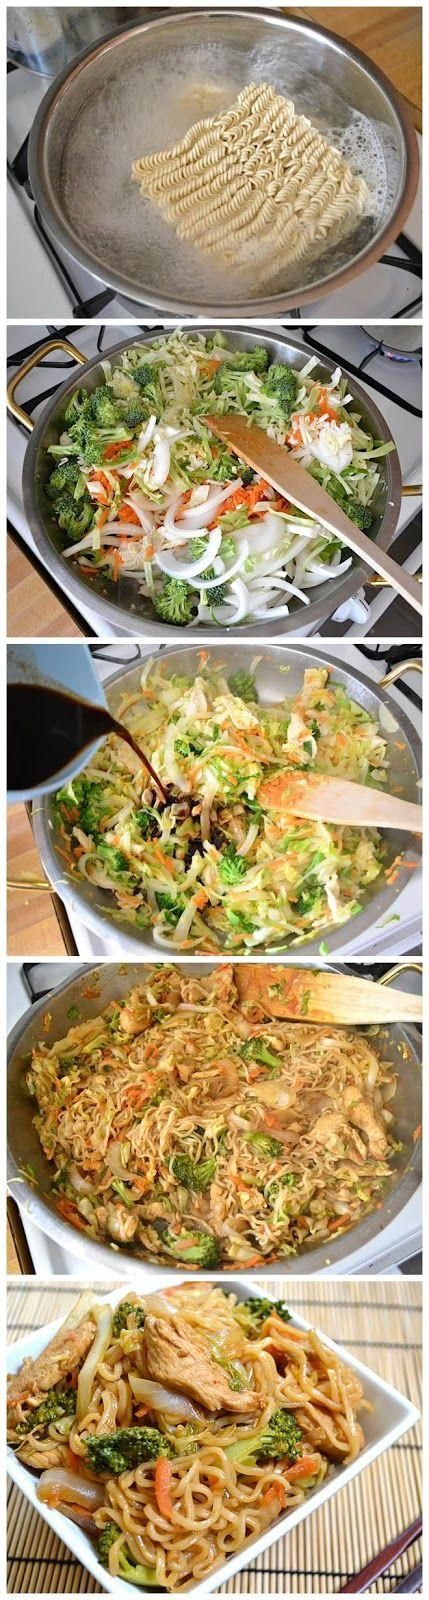 chicken yakisoba - Love with recipe